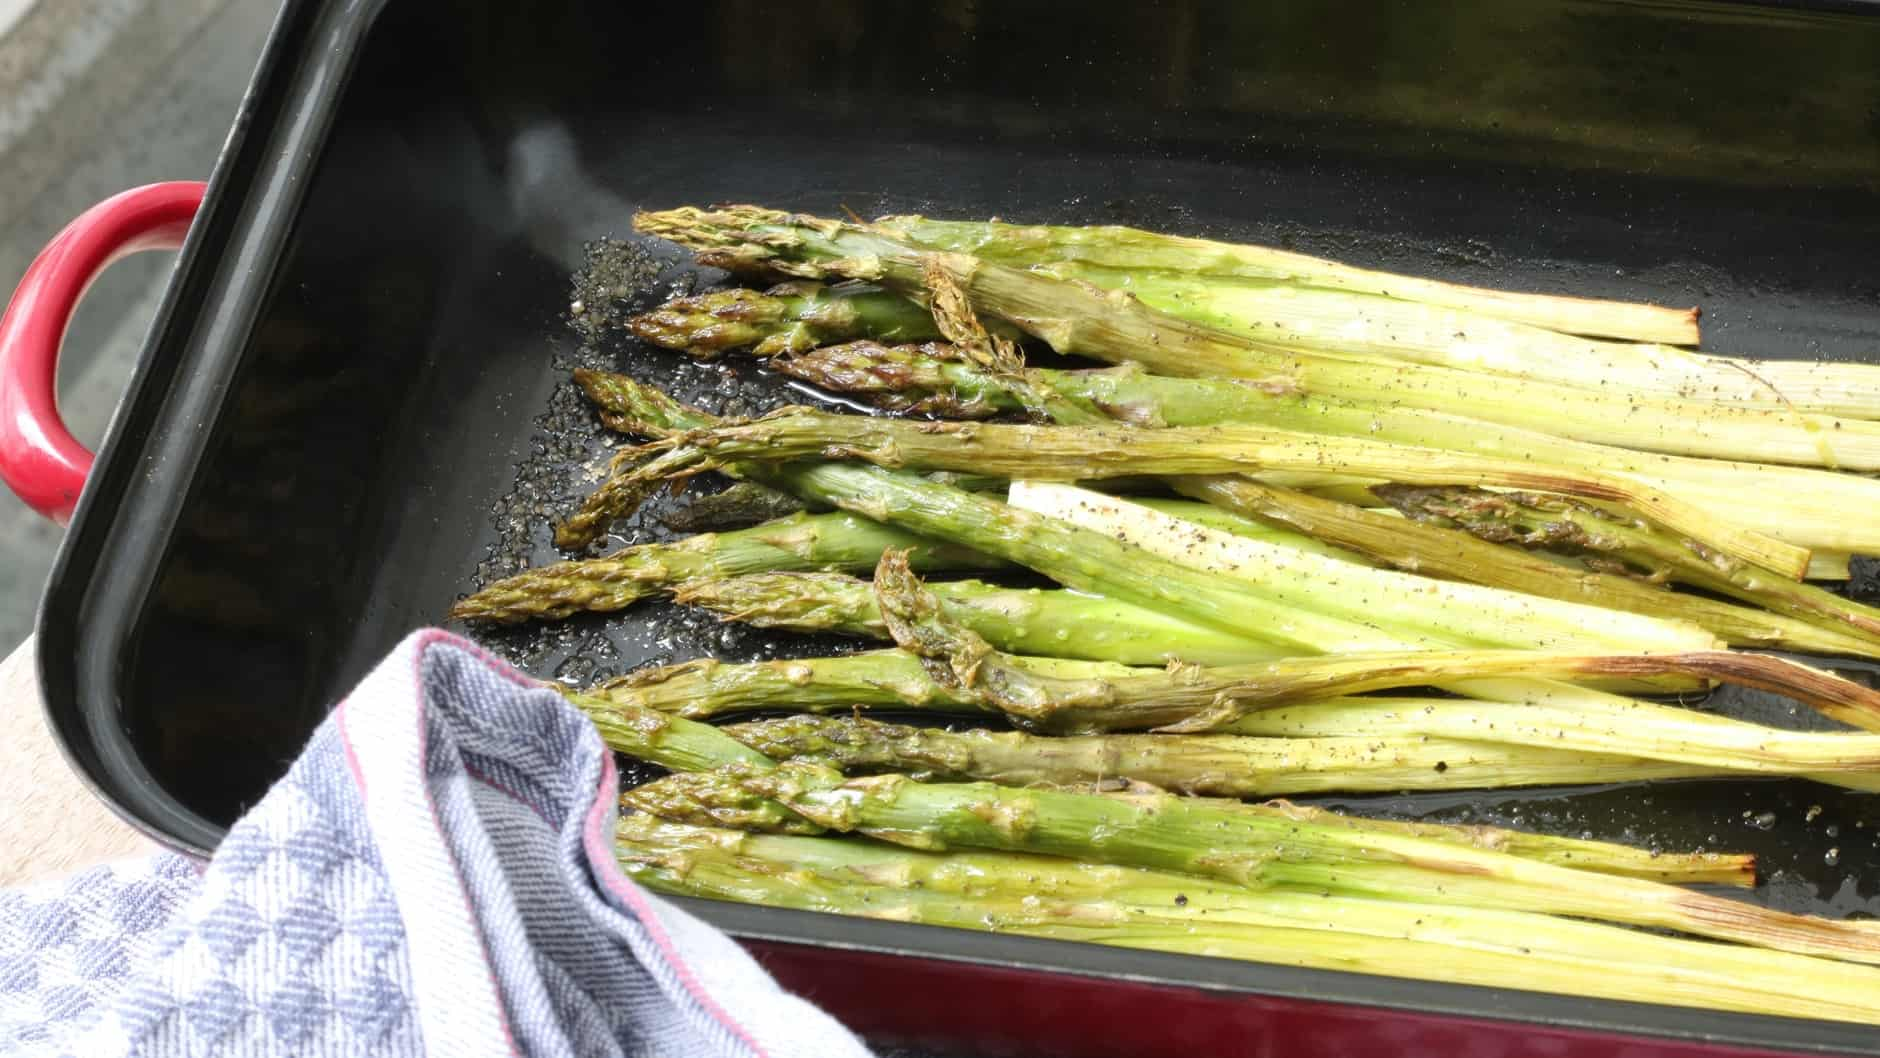 grilled asparagus, a wonderful garnish to the fish